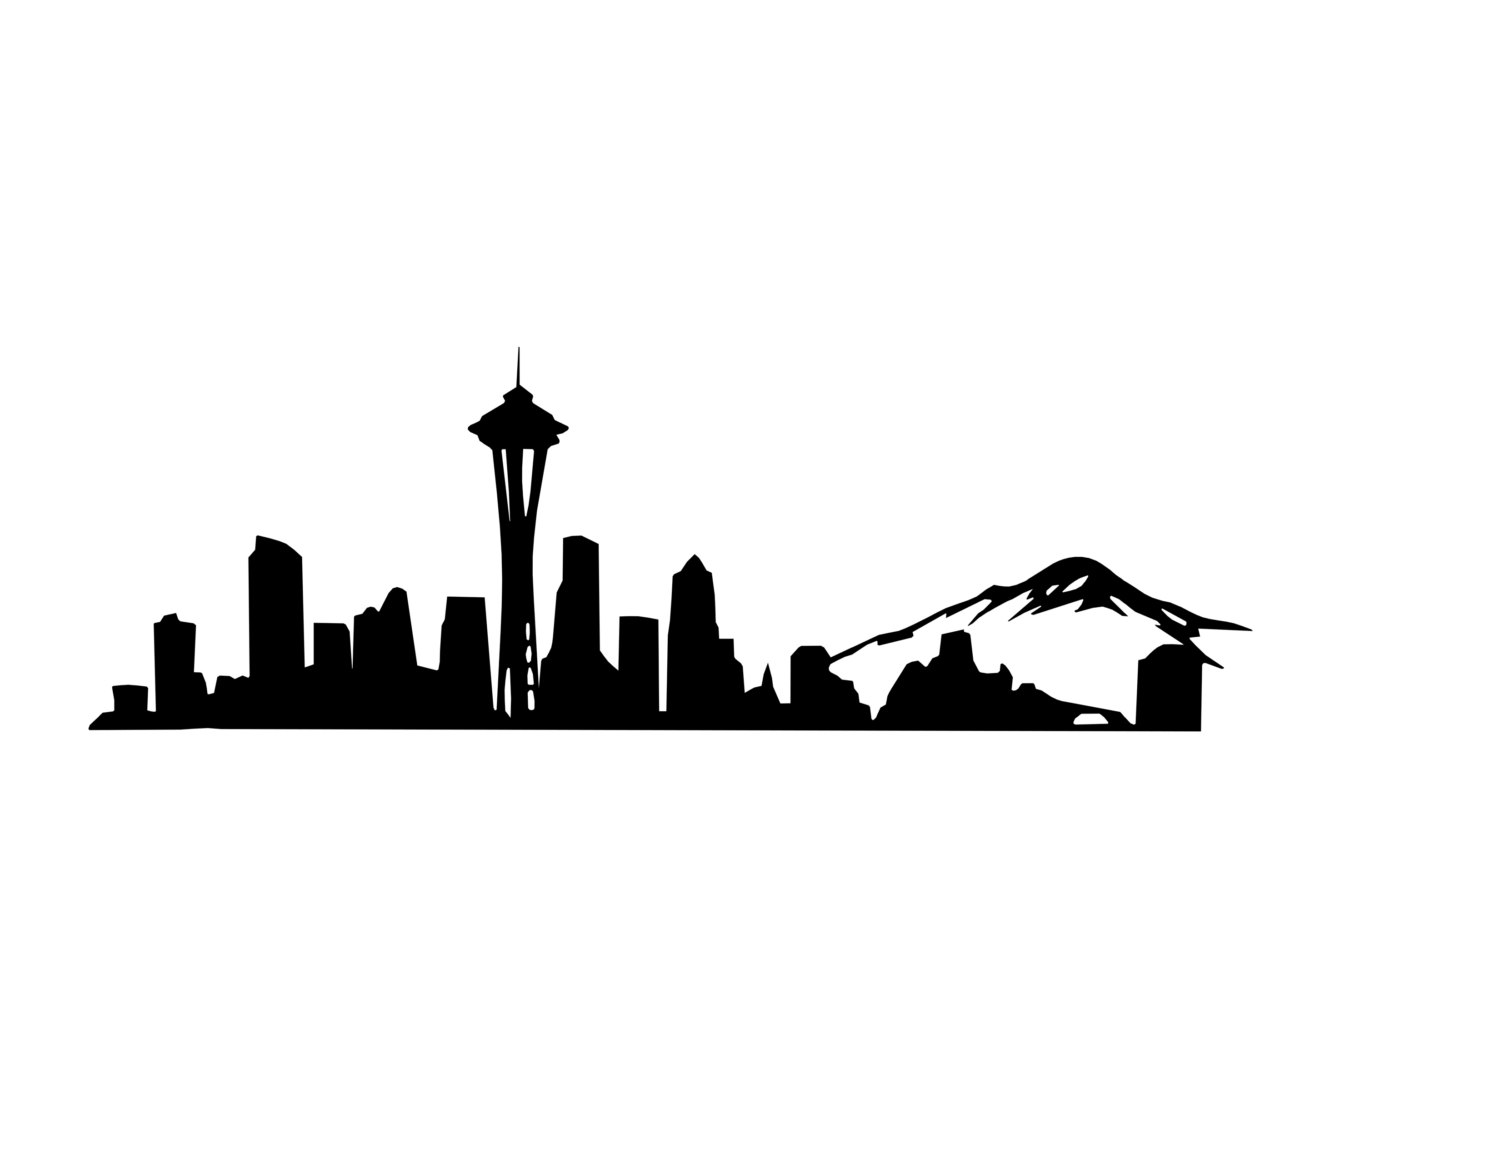 Watertower seattle clipart image royalty free download Skyline Silhouette Clipart | Free download best Skyline ... image royalty free download